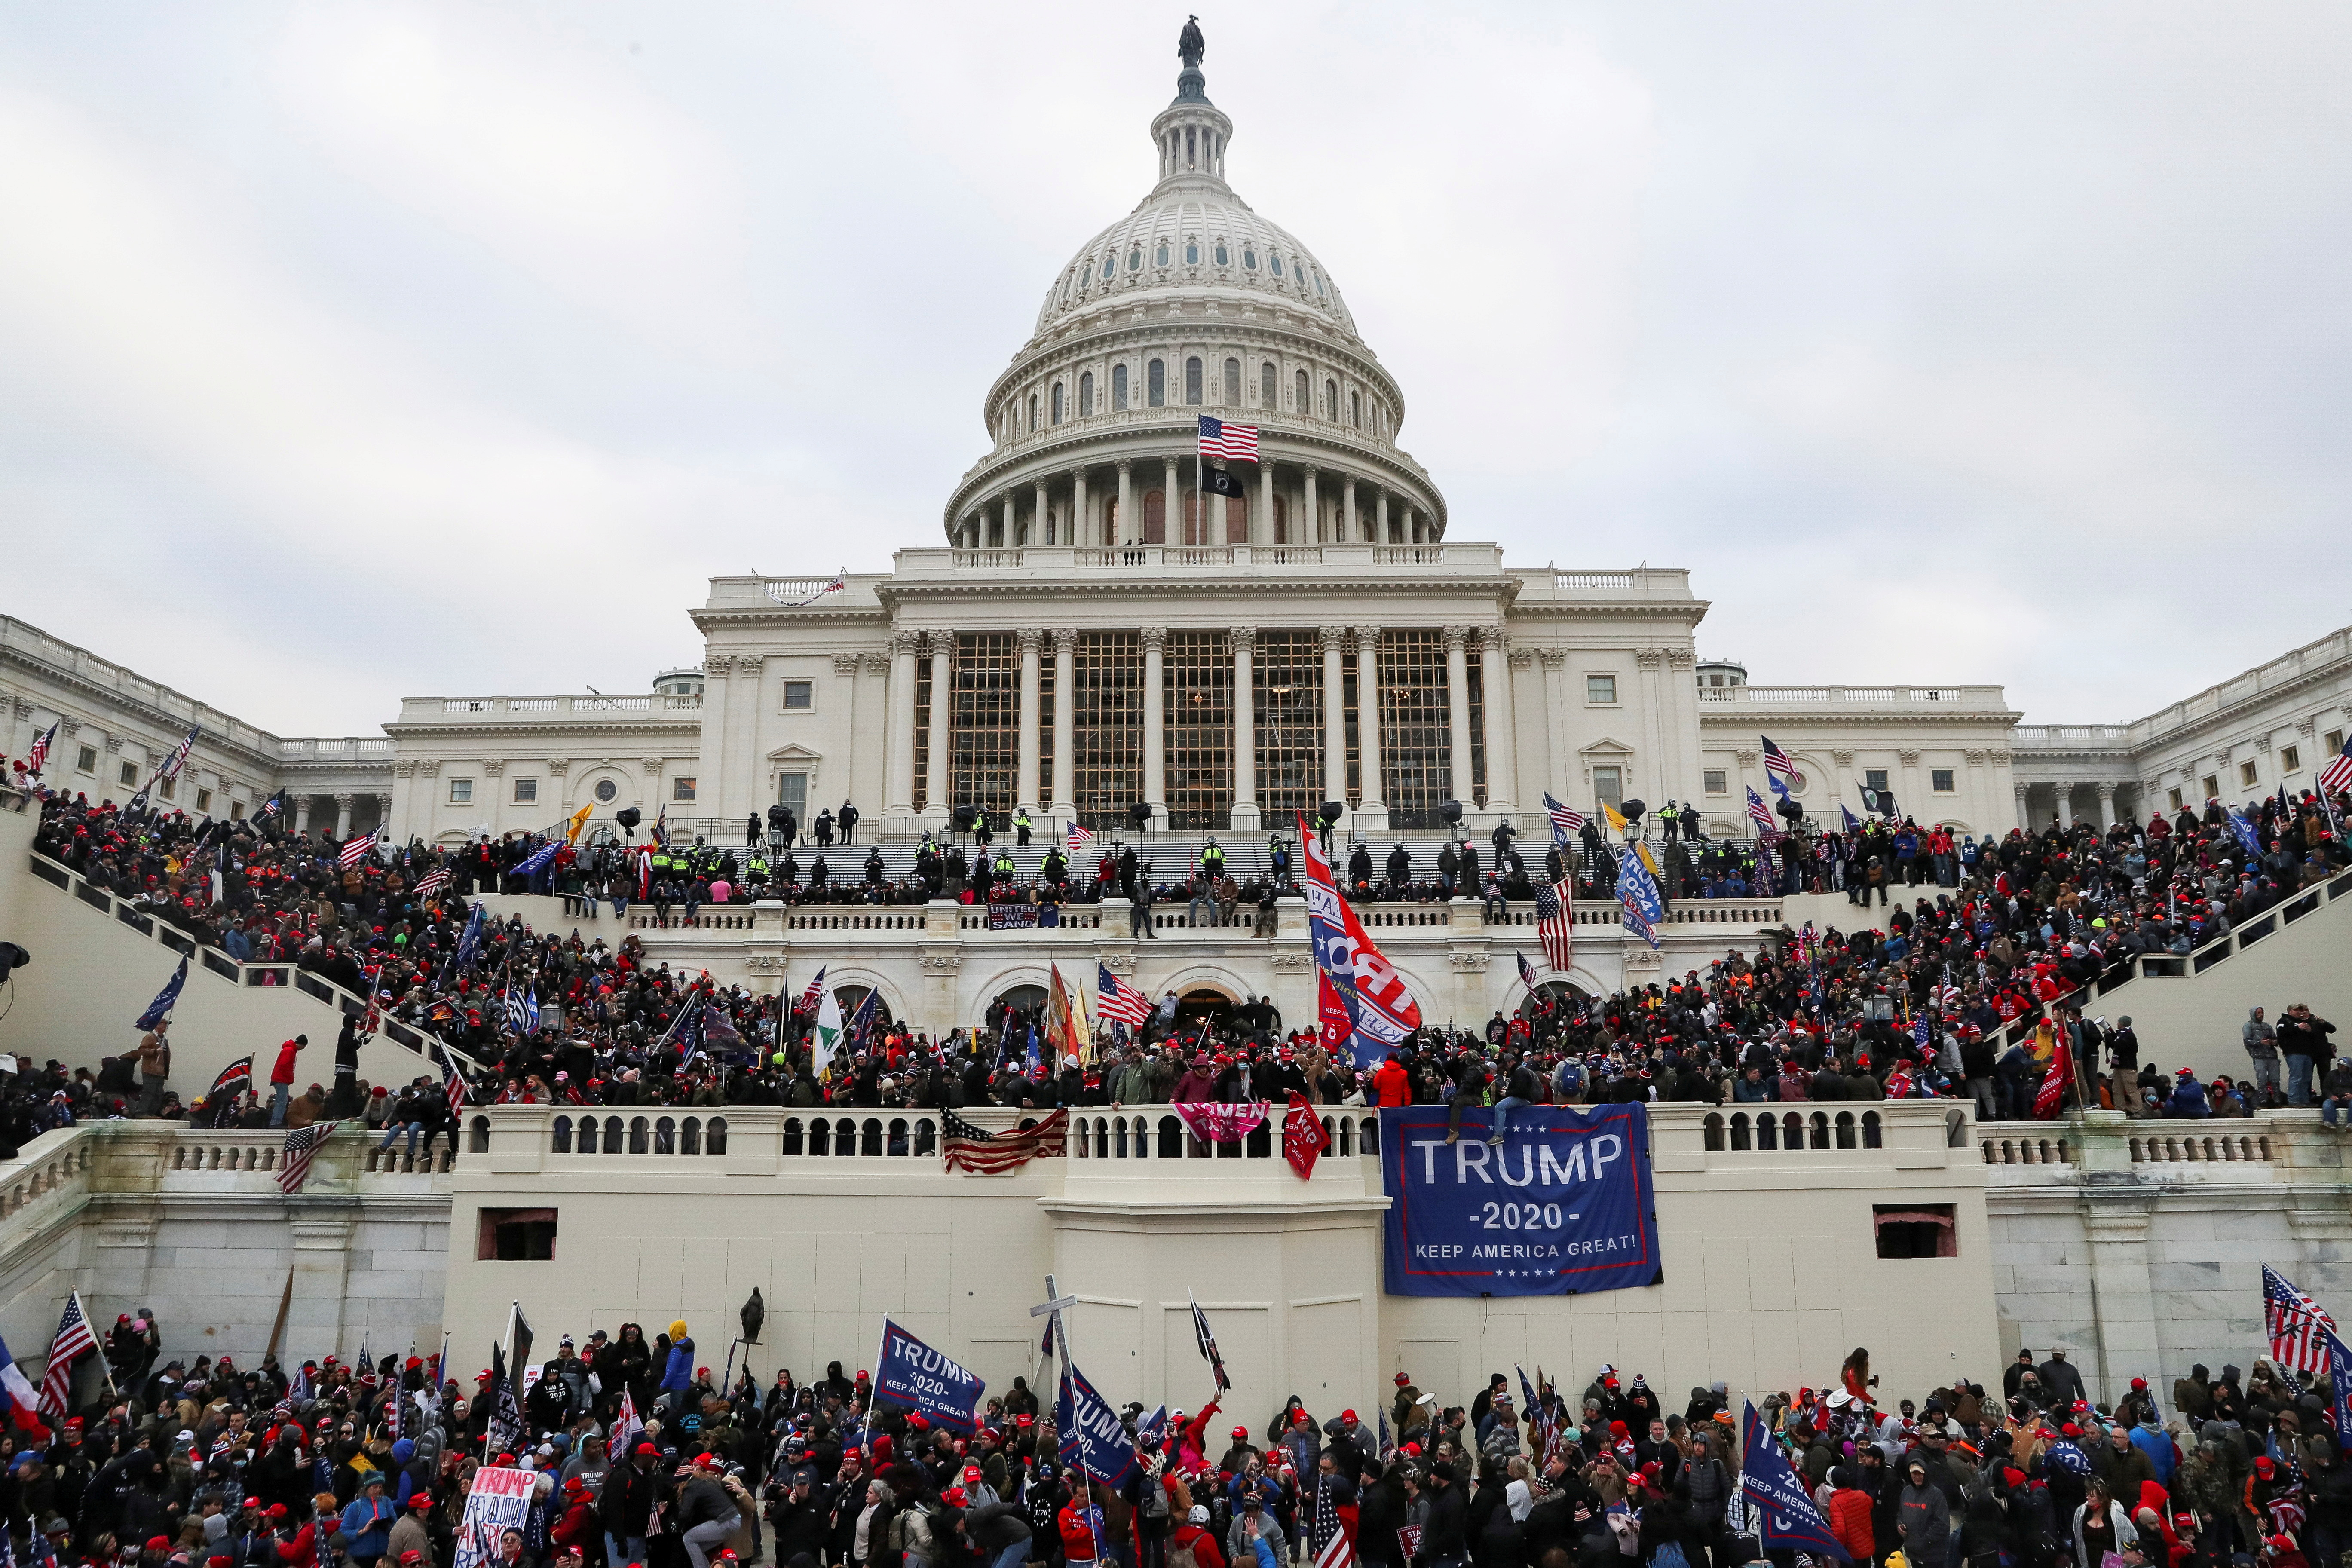 Supporters of U.S. President Donald Trump gather in front of the U.S. Capitol Building in Washington, U.S., January 6, 2021. REUTERS/Leah Millis/File Photo